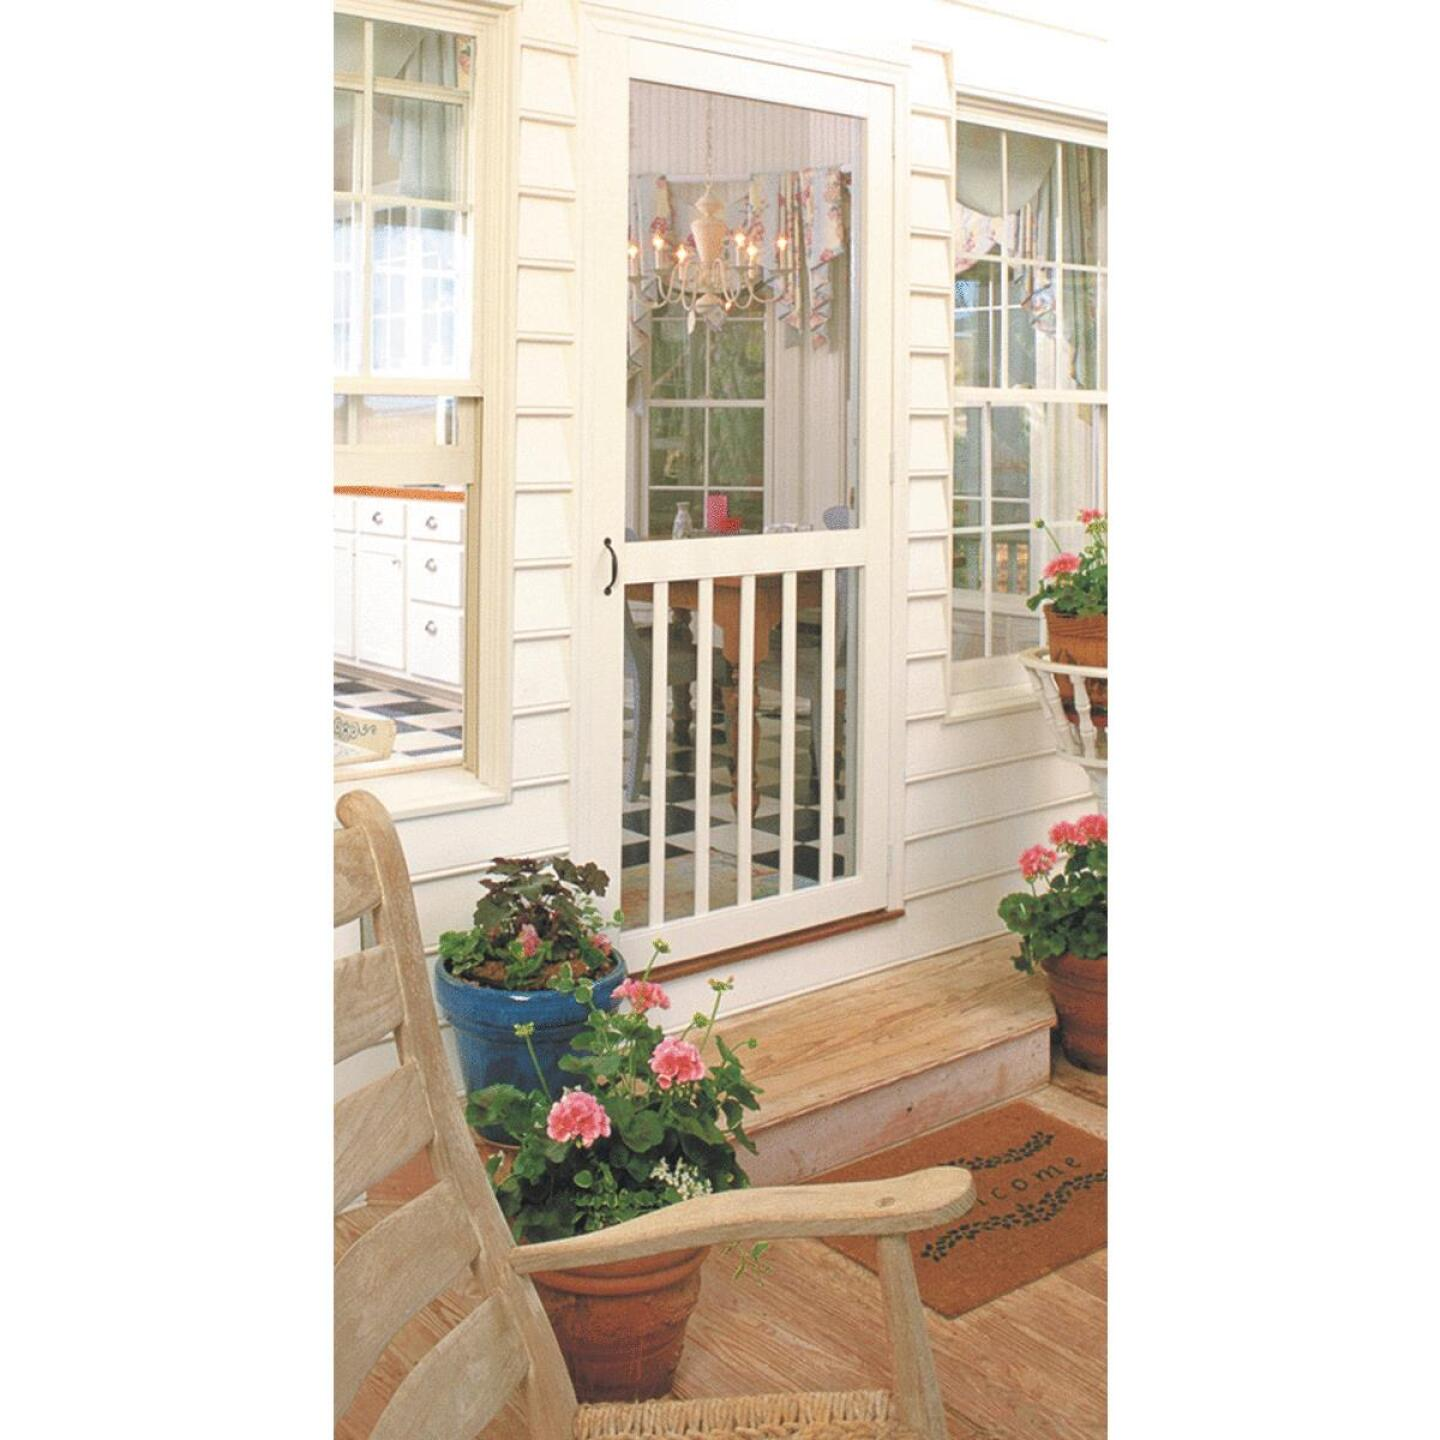 Snavely Kimberly Bay 32 In. W. x 80 In. H. x 1 In. Thick White Vinyl 5-Bar Screen Door Image 2